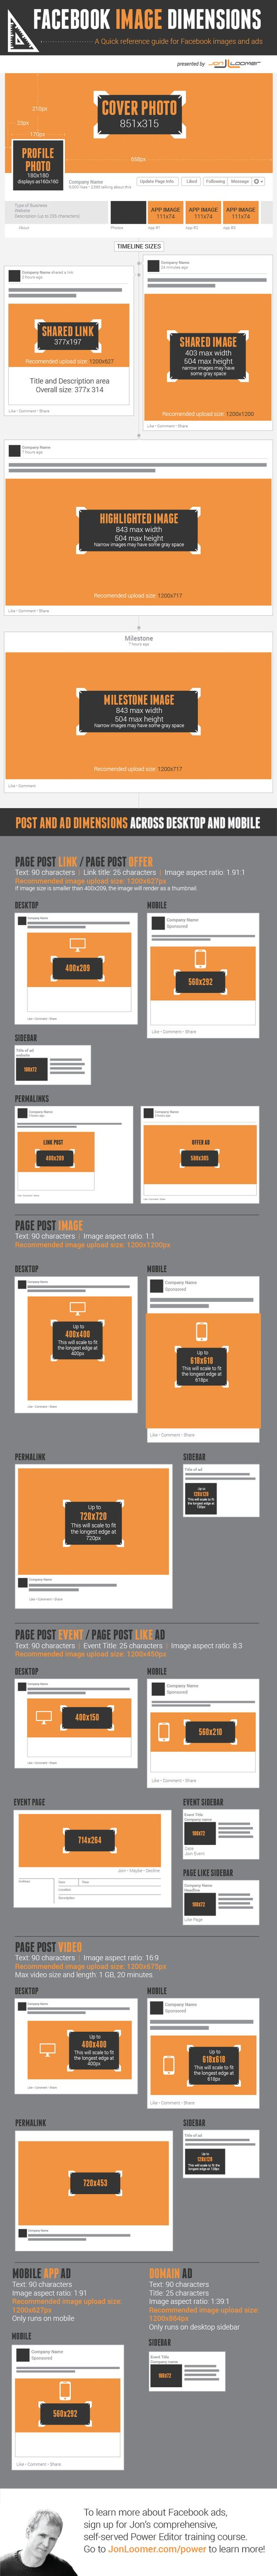 FaceBook image dimensions #infographic